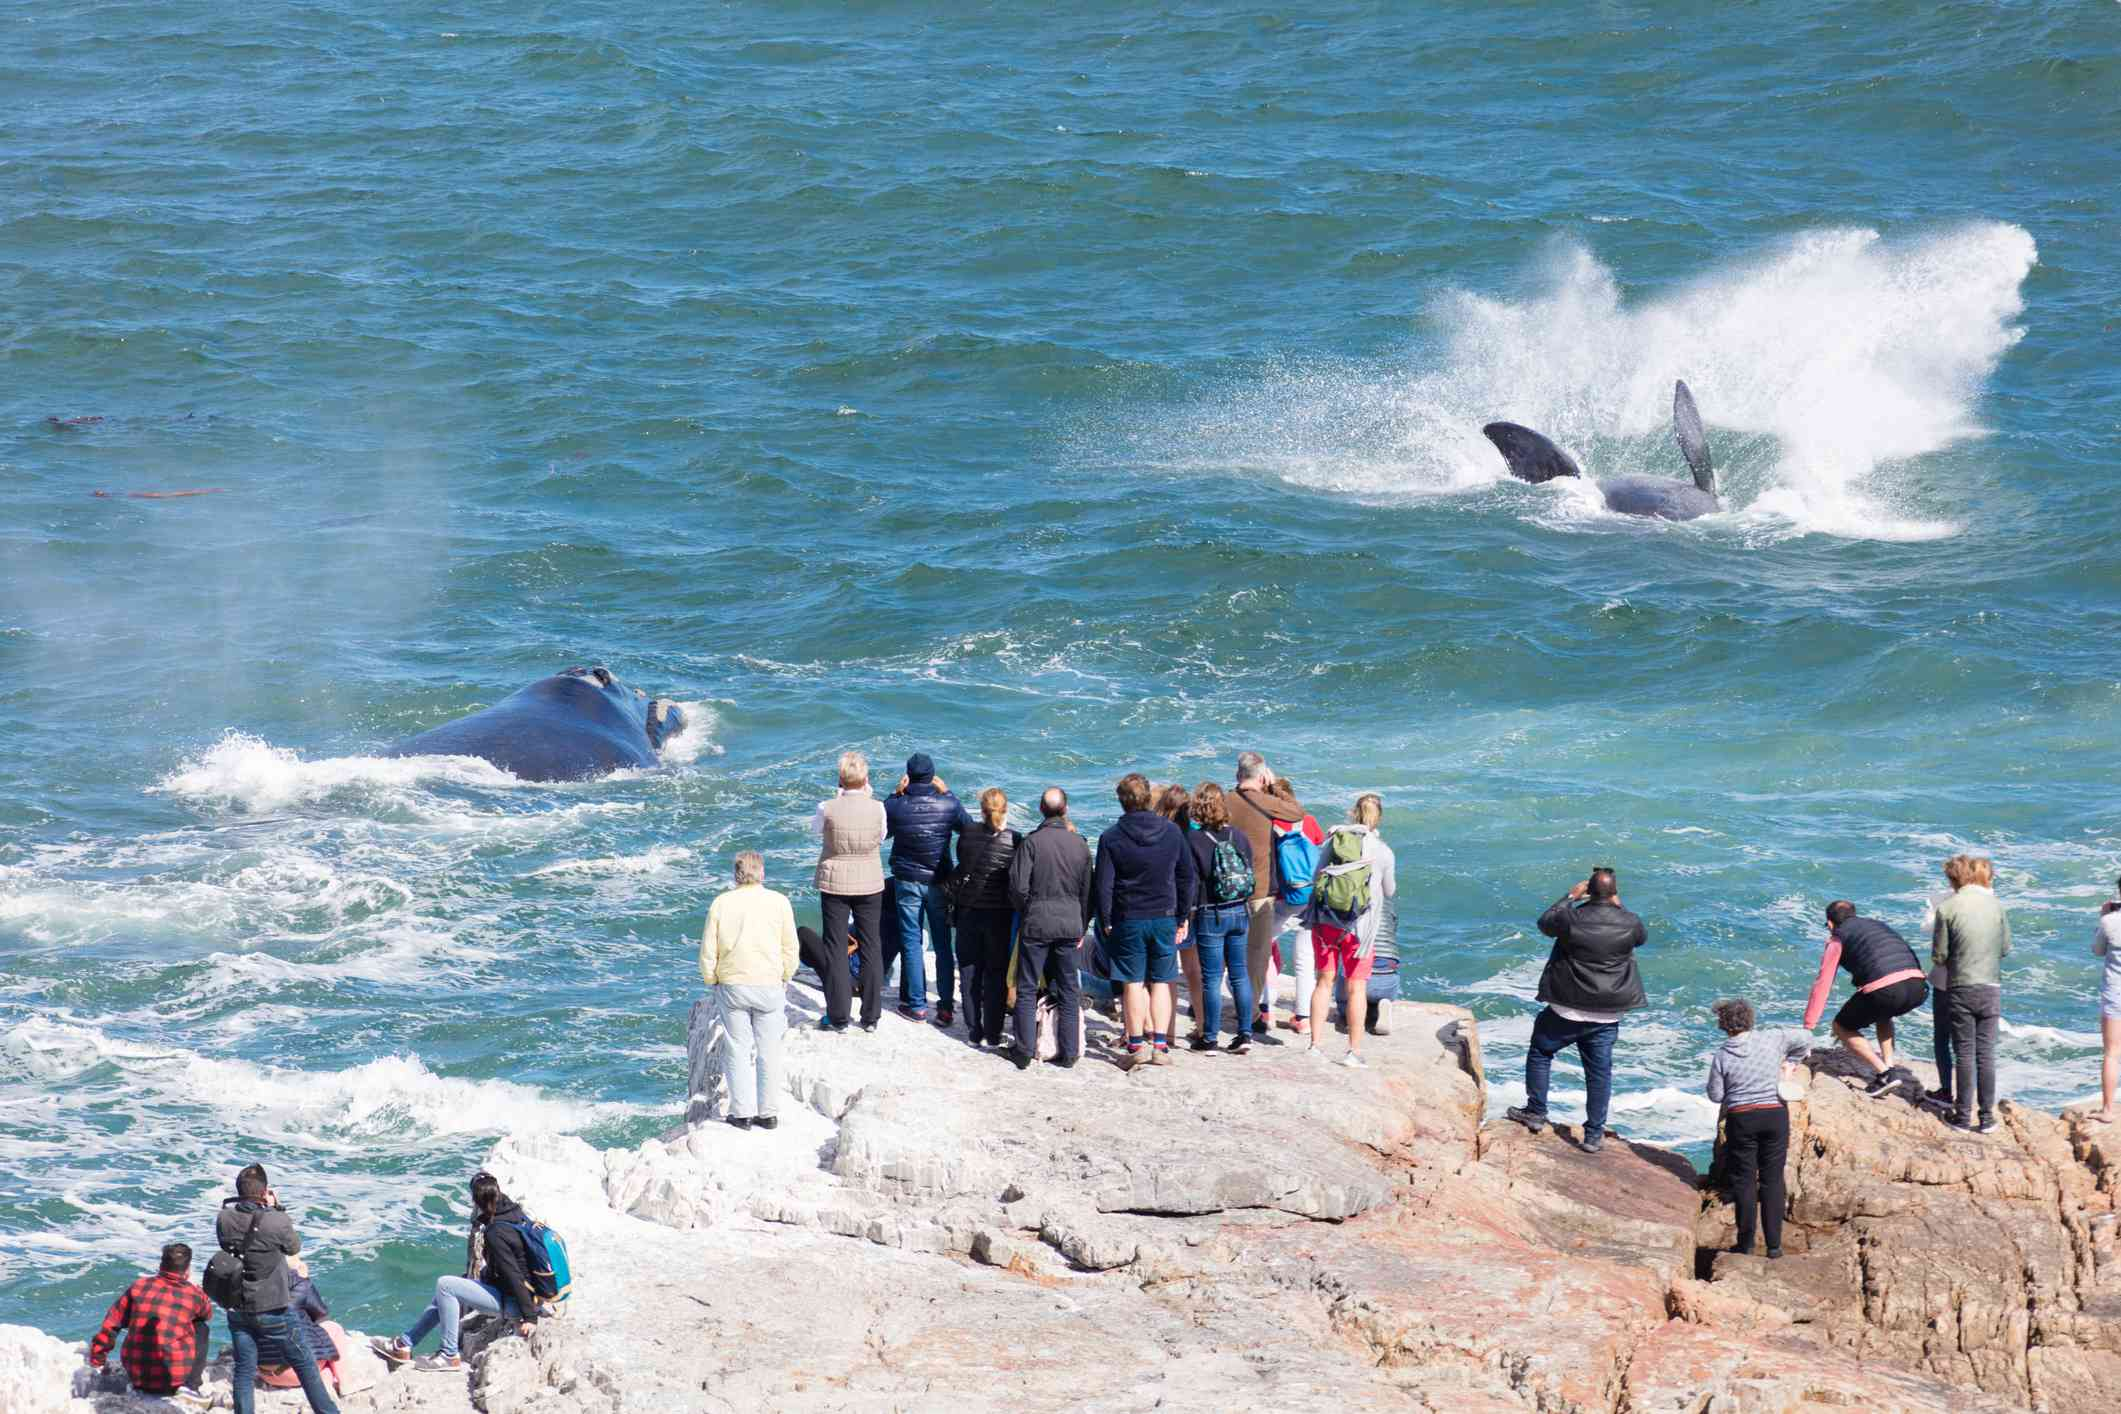 Tourists watching whales from the cliffs near Hermanus, South Africa